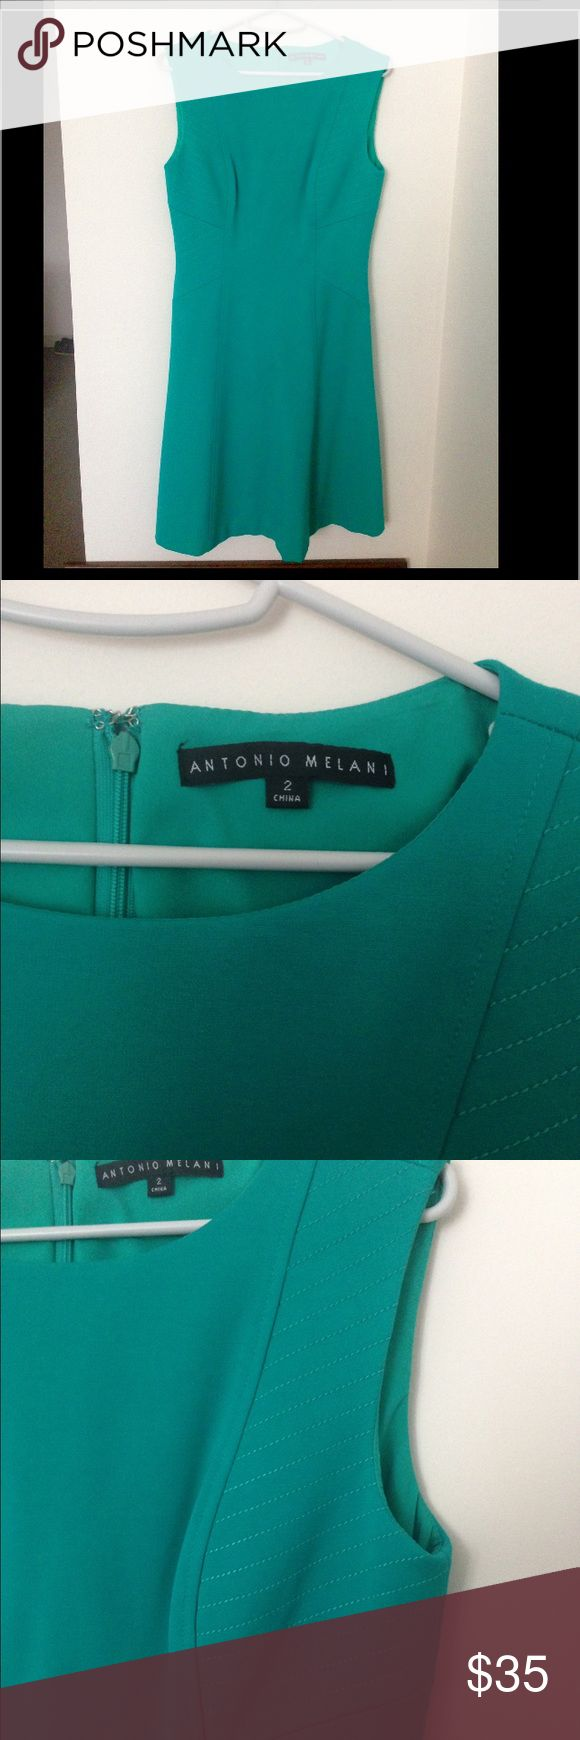 Antonio Melani fit and flare dress Beautiful fit and flare dress from Antonio melani. Has a beautiful silhouette. Only wore once. In excellent shape. ANTONIO MELANI Dresses